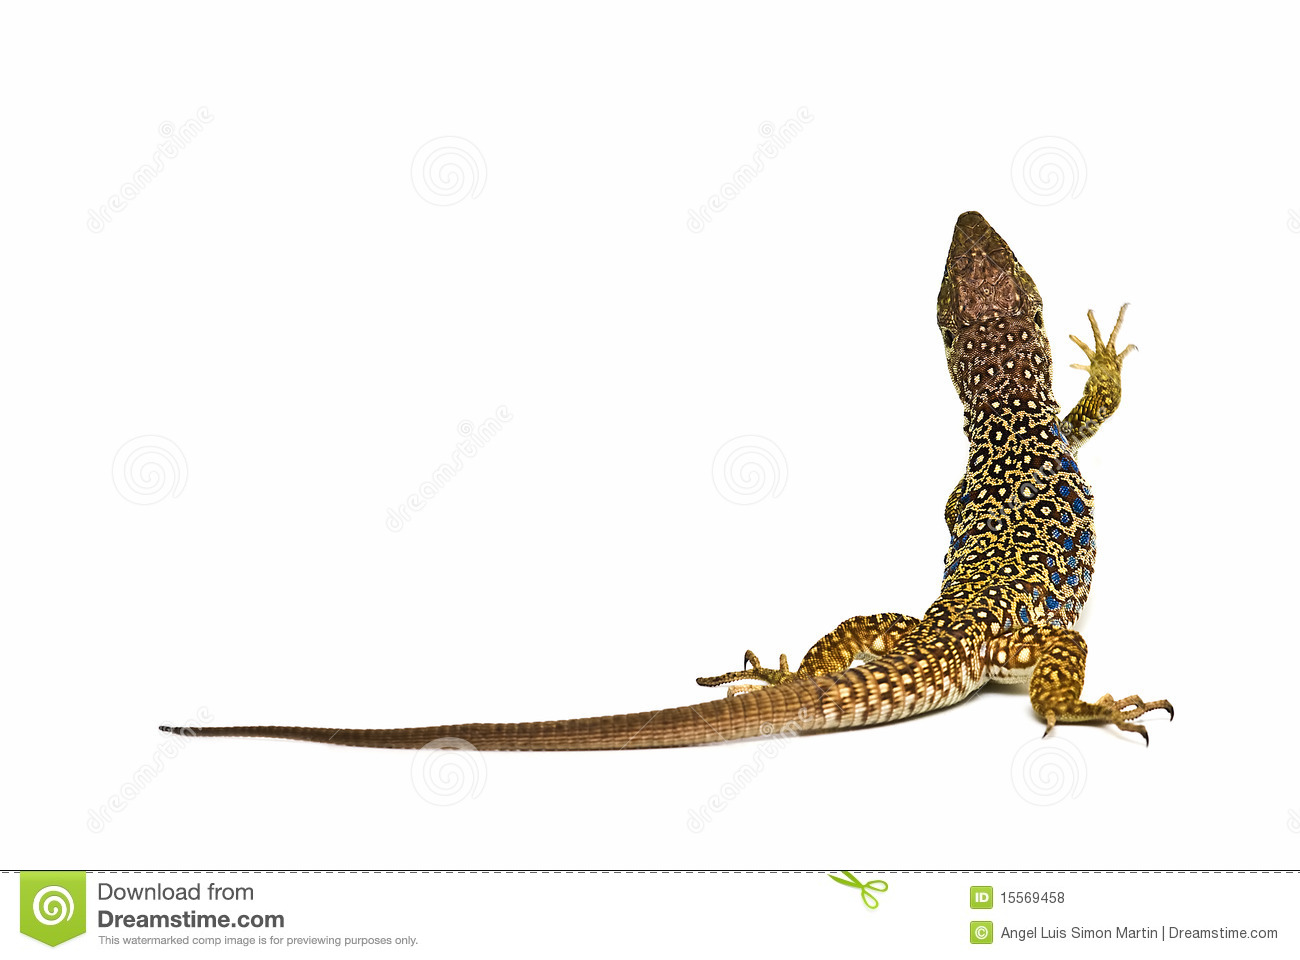 Ocellated Lizard clipart #12, Download drawings